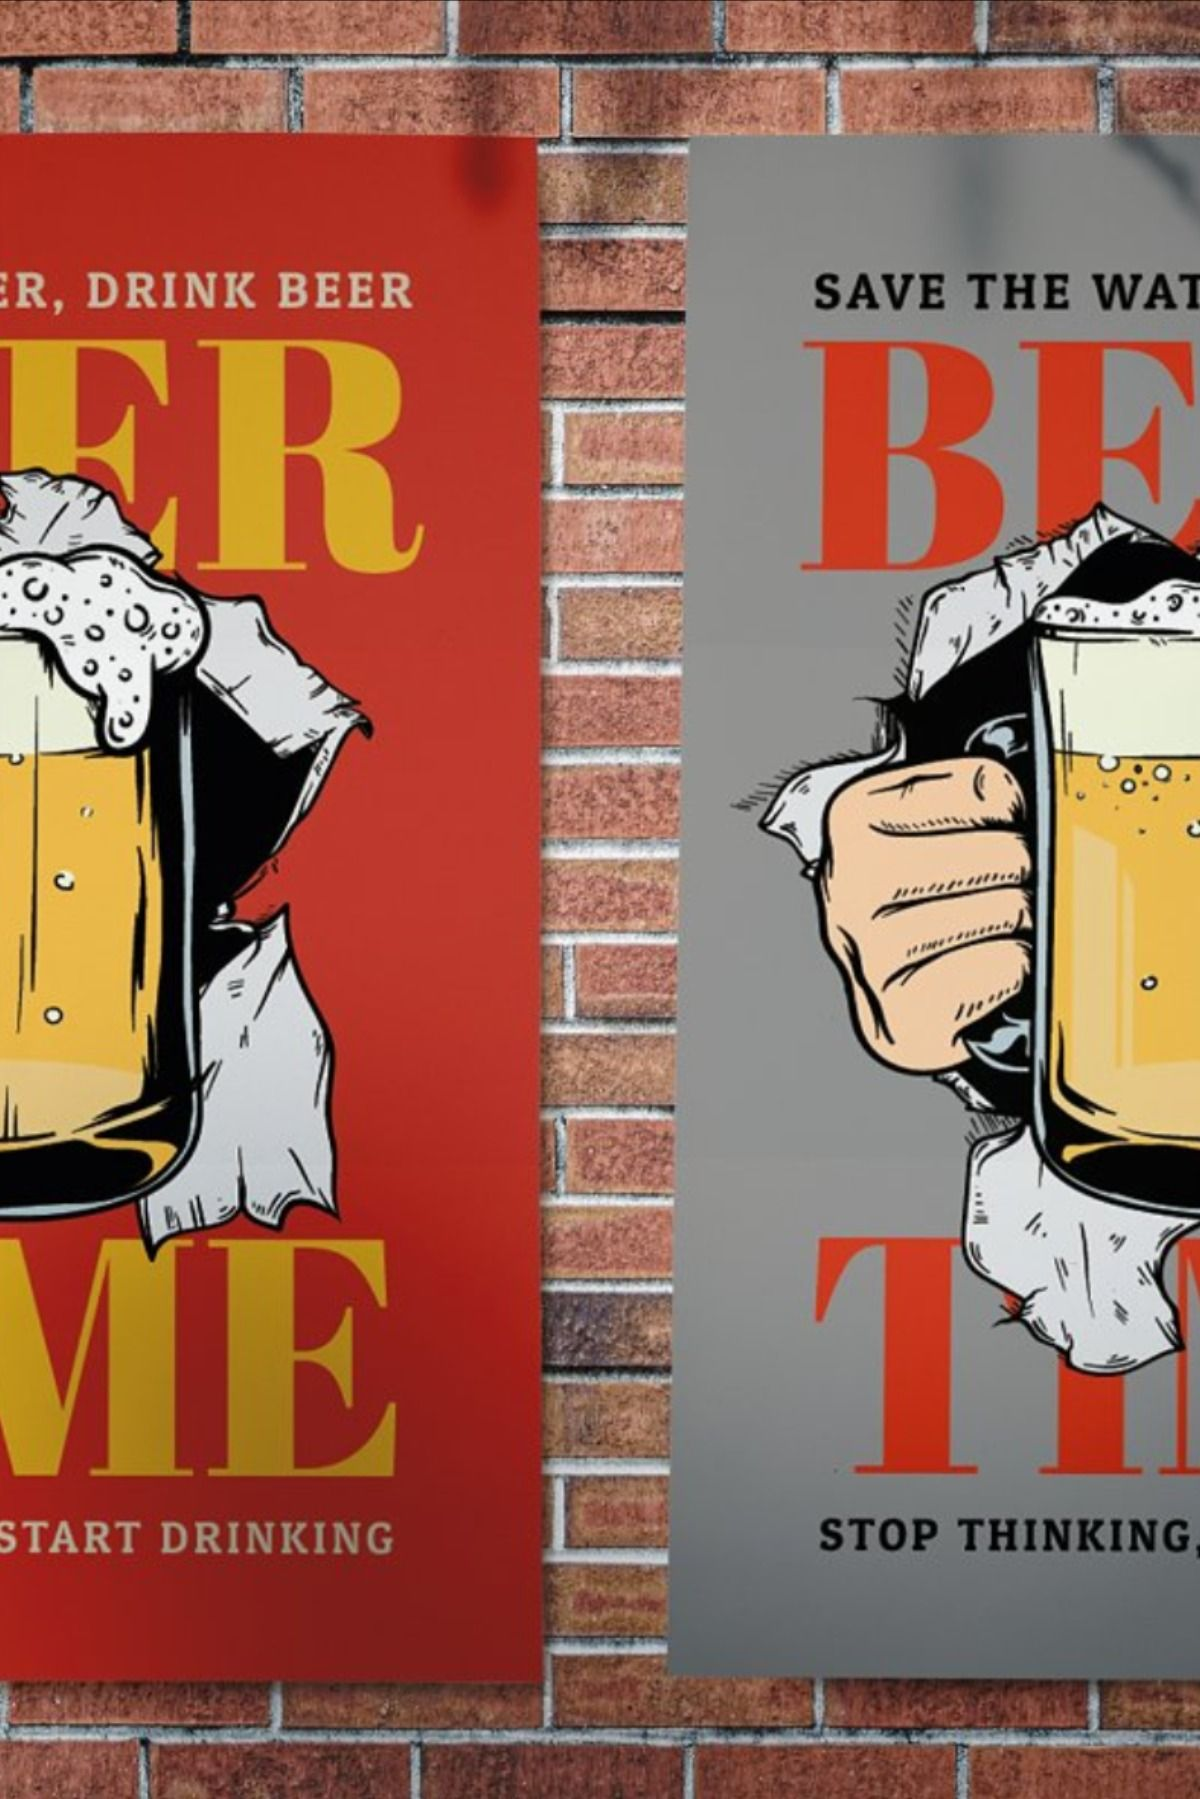 Beer Drawing Quotes Flyer Beer drawing, Flyer, Drawing